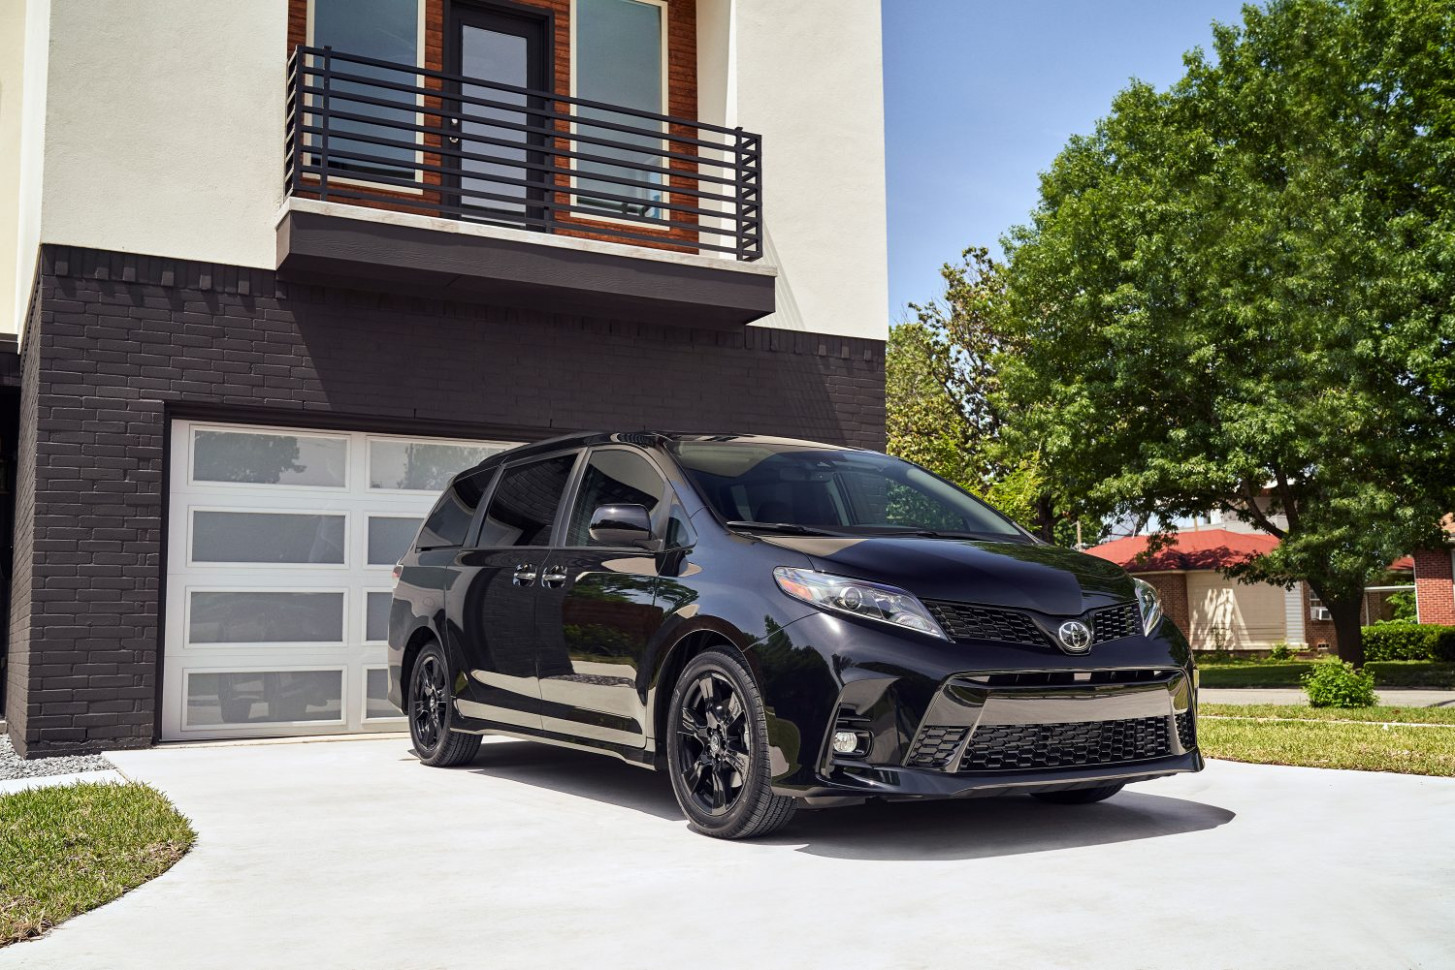 8 Toyota Sienna - All-New Nightshade Edition Added - Toyota USA ...